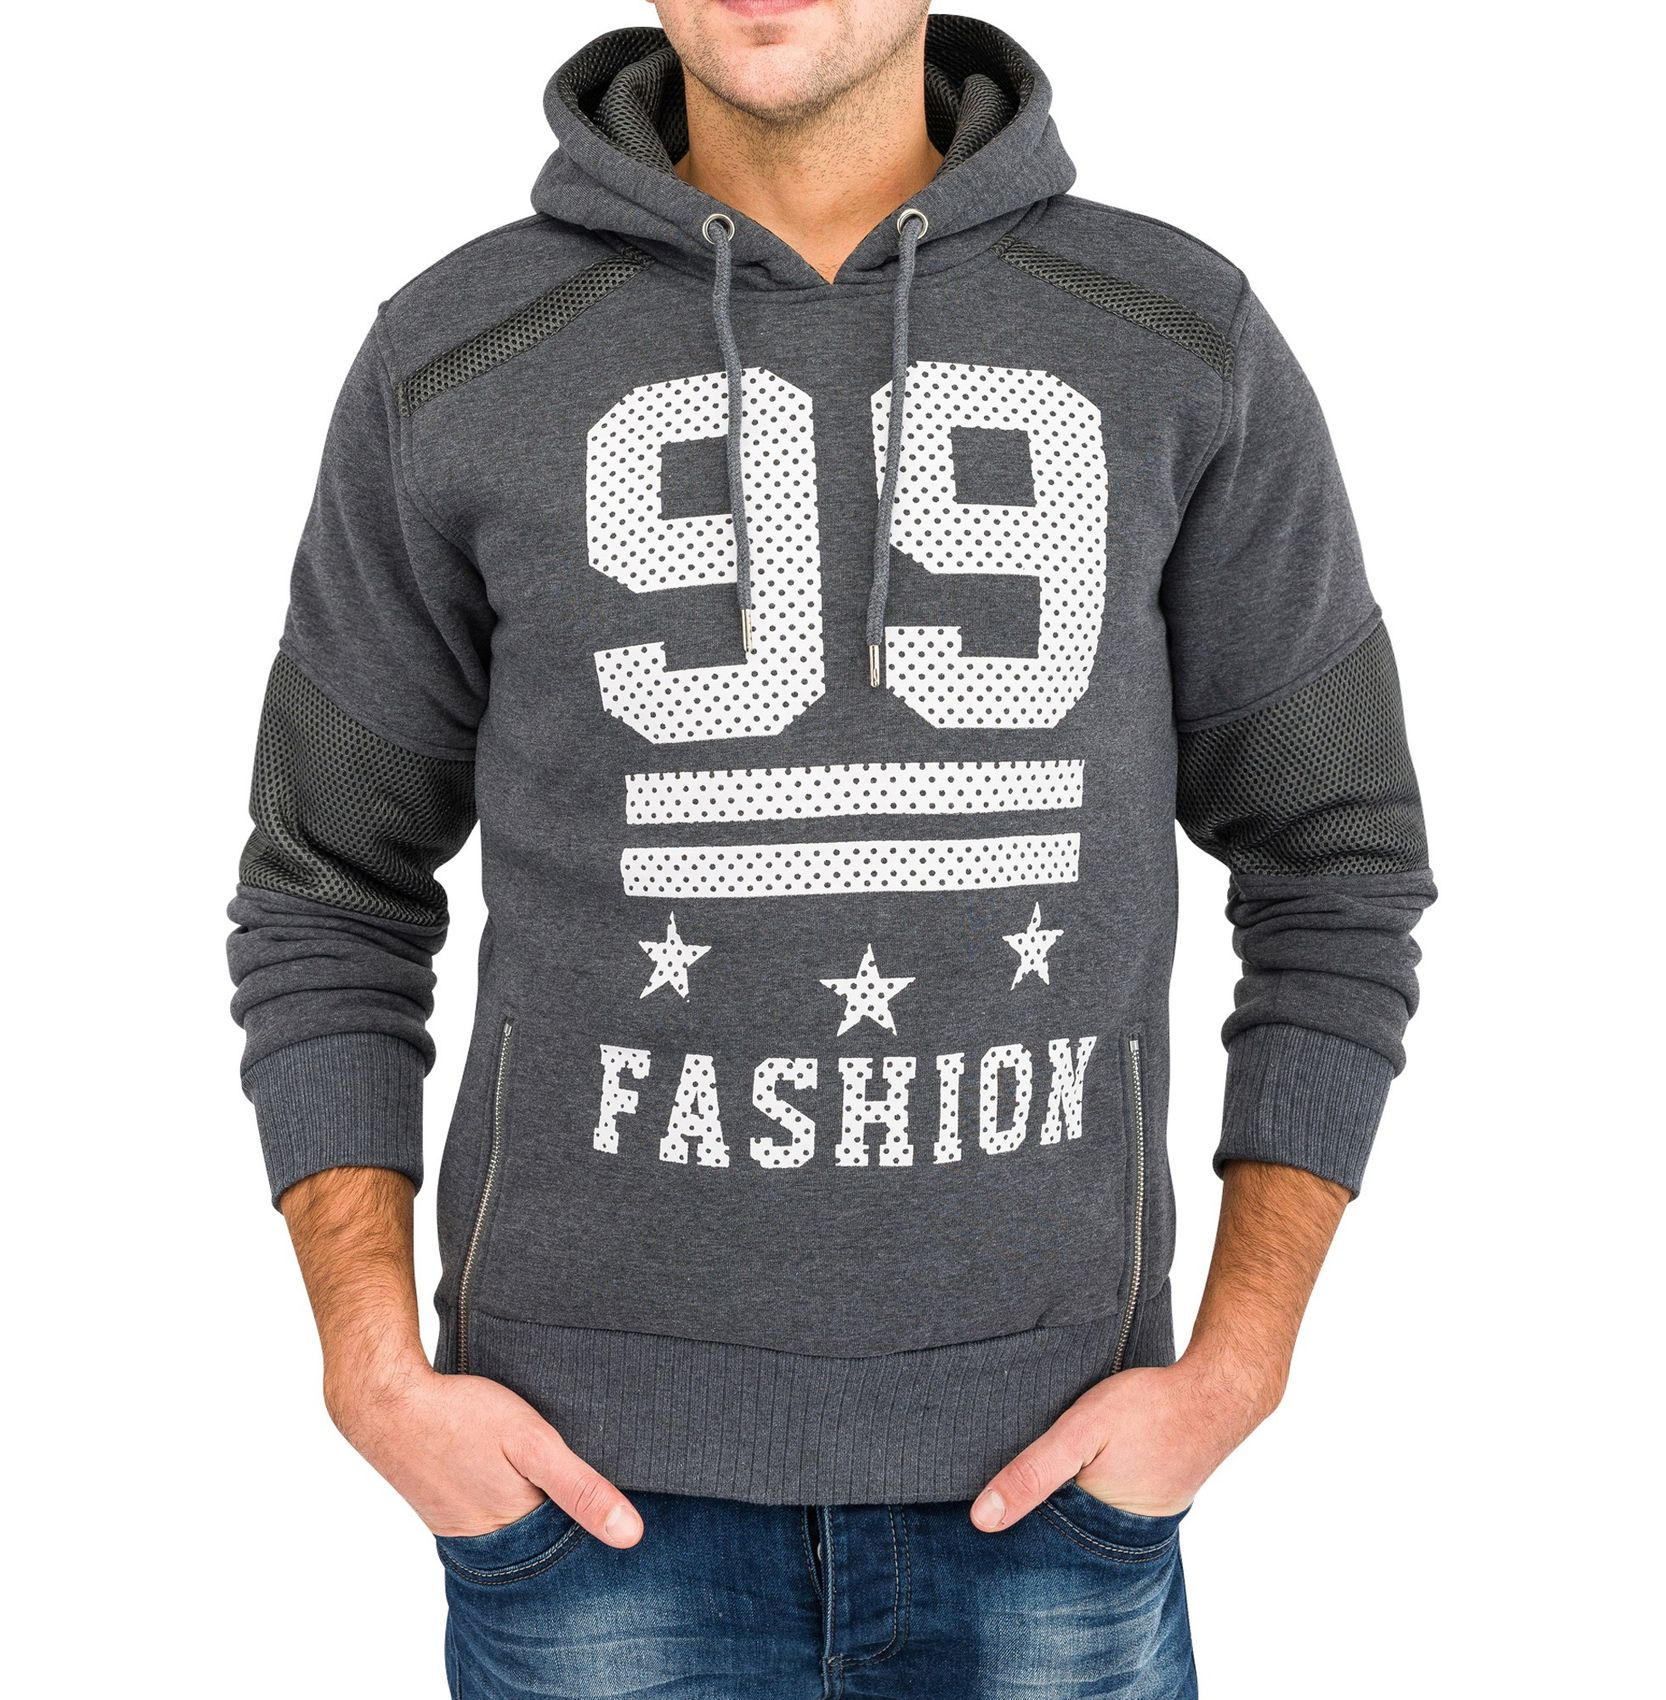 herren kapuzenpullover print trend pullover fashion hoodie aufdruck pulli punkte ebay. Black Bedroom Furniture Sets. Home Design Ideas